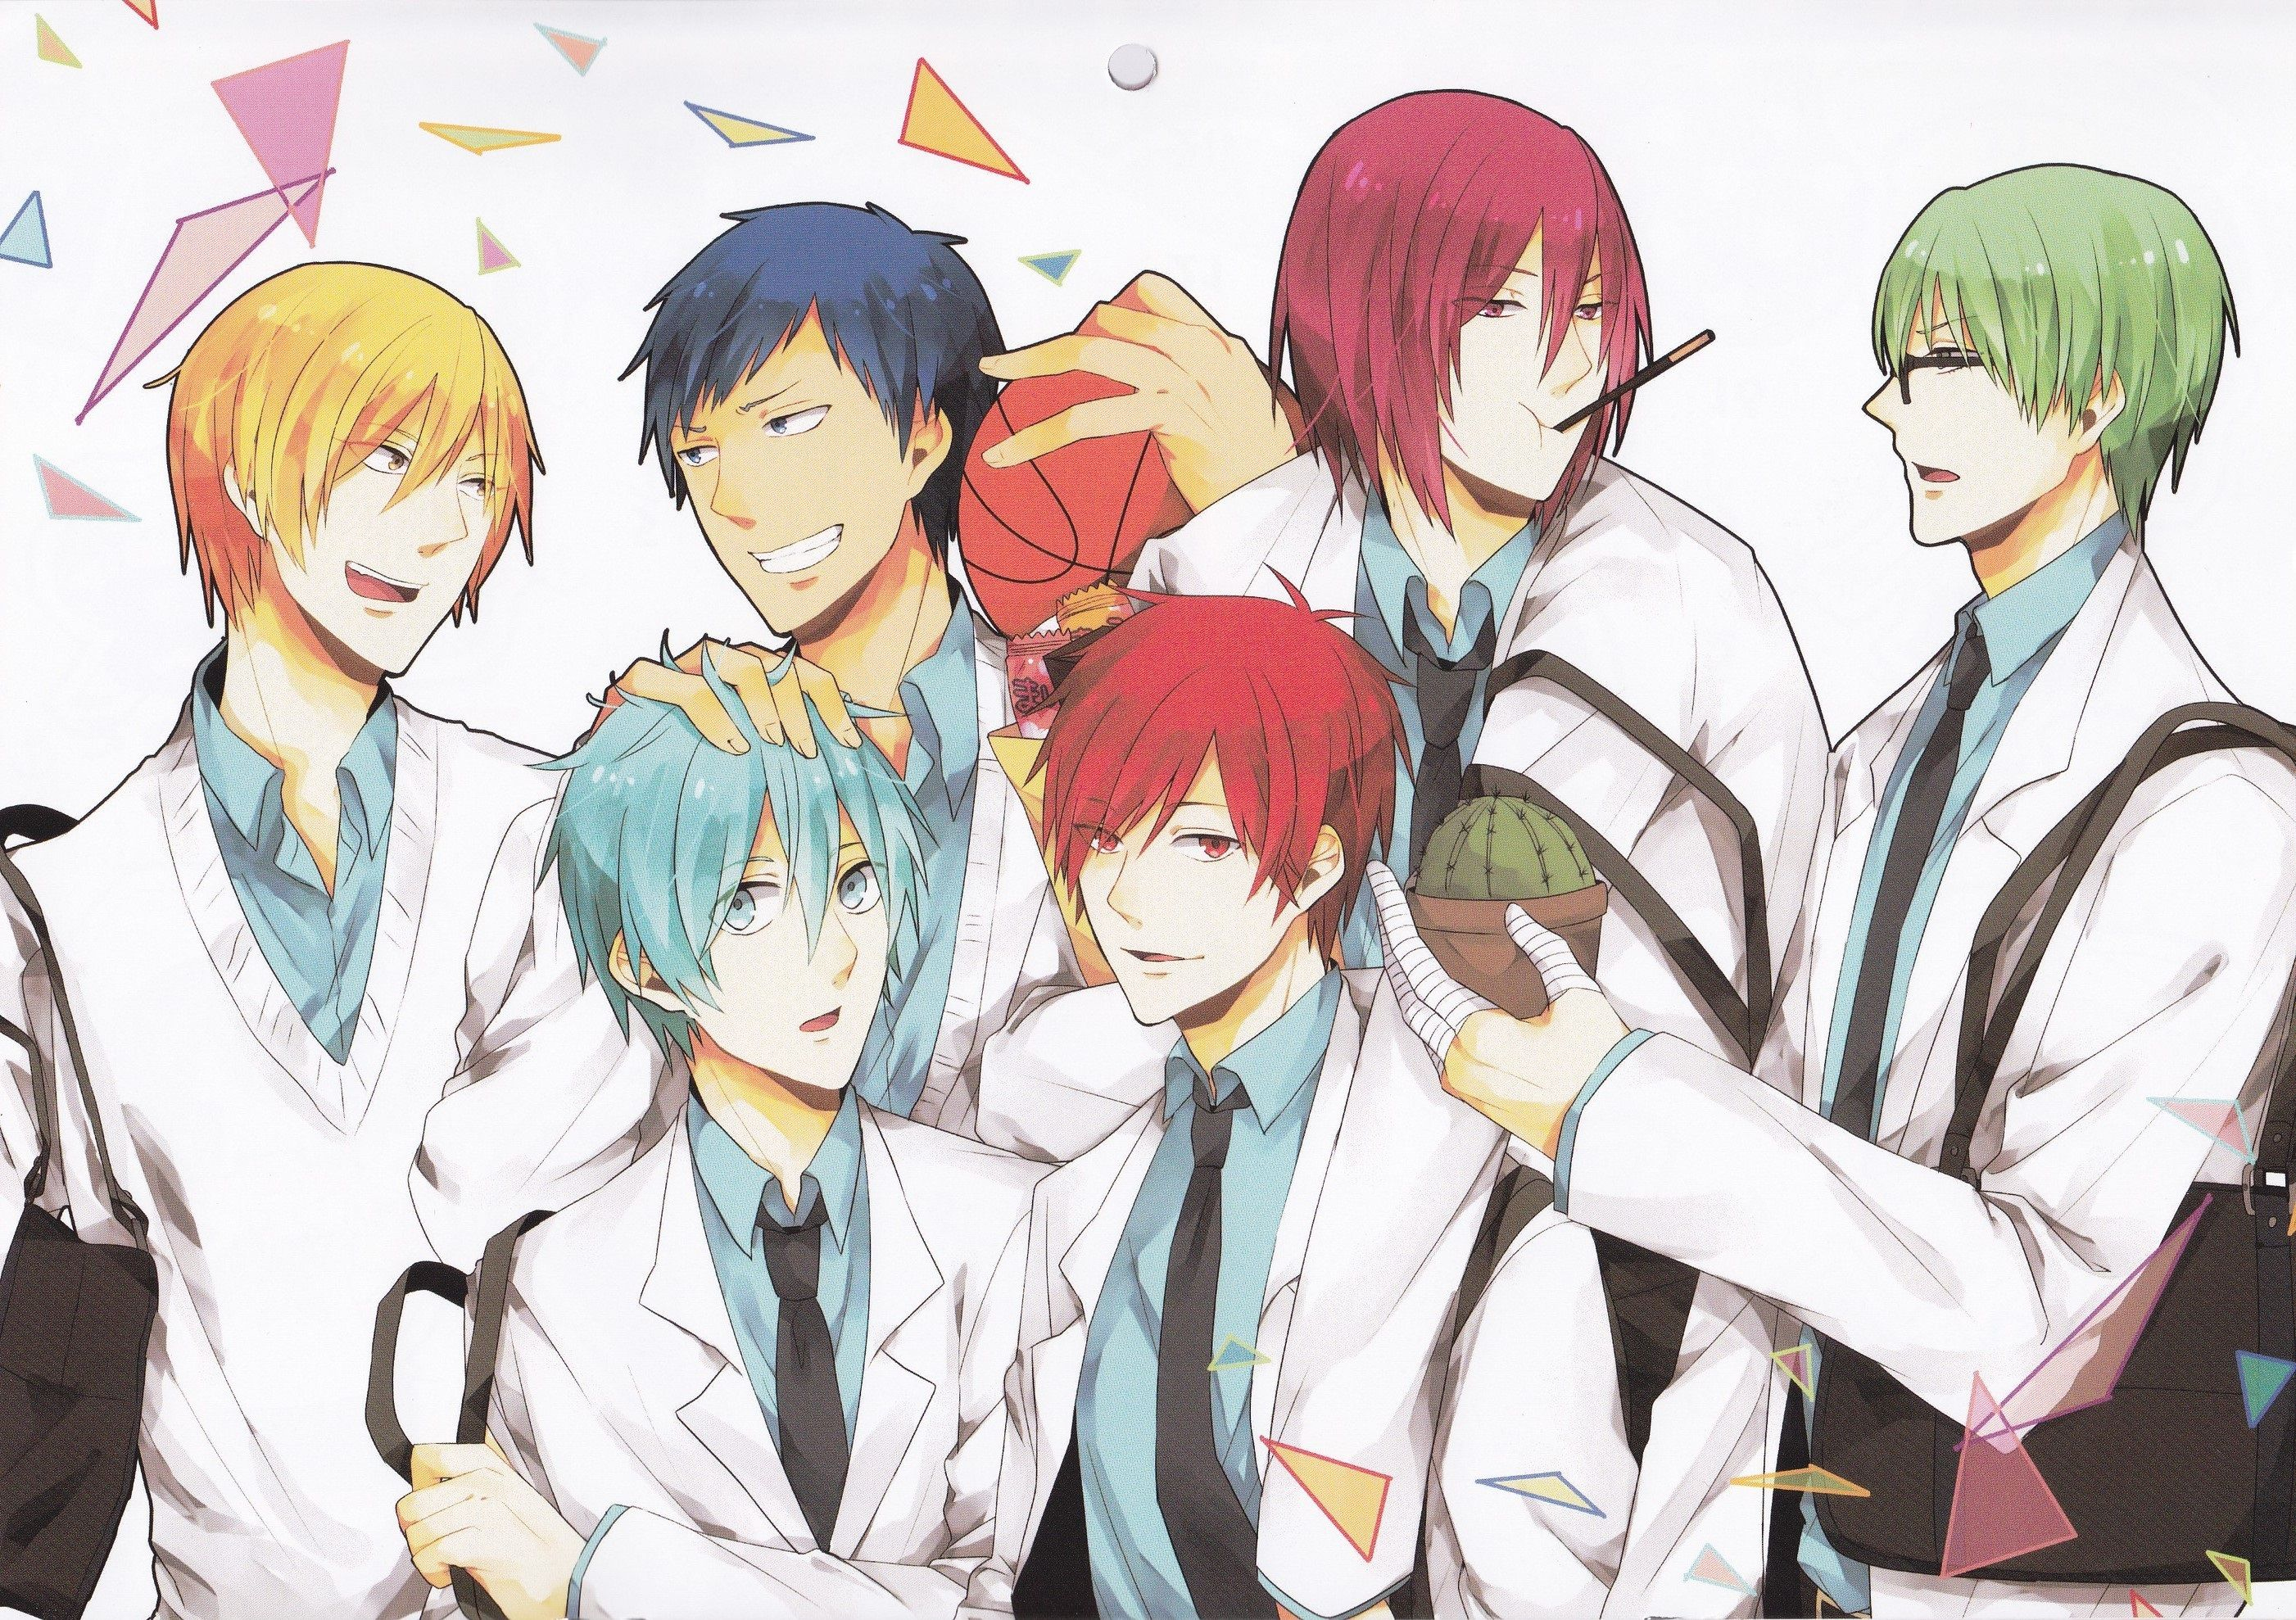 Kuroko no basuke hd wallpapers and backgrounds kuroko no basuke hd wallpapers and backgrounds voltagebd Choice Image